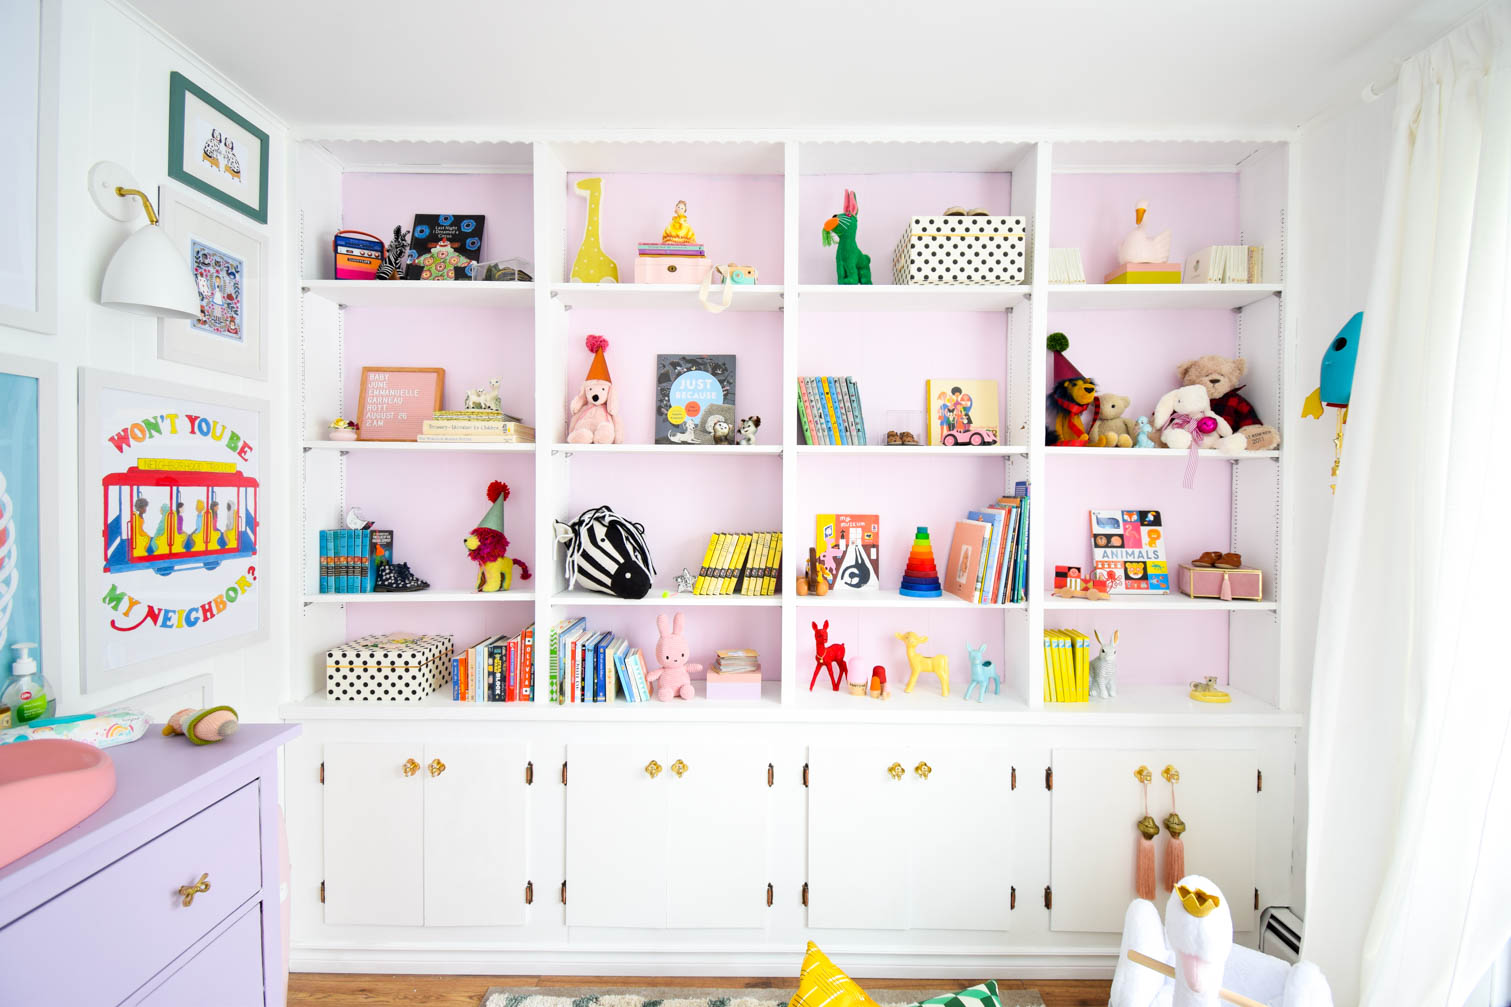 My tried and tested nursery bookshelf styling tips are easy to do, and will make any space look playful and expertly designed.